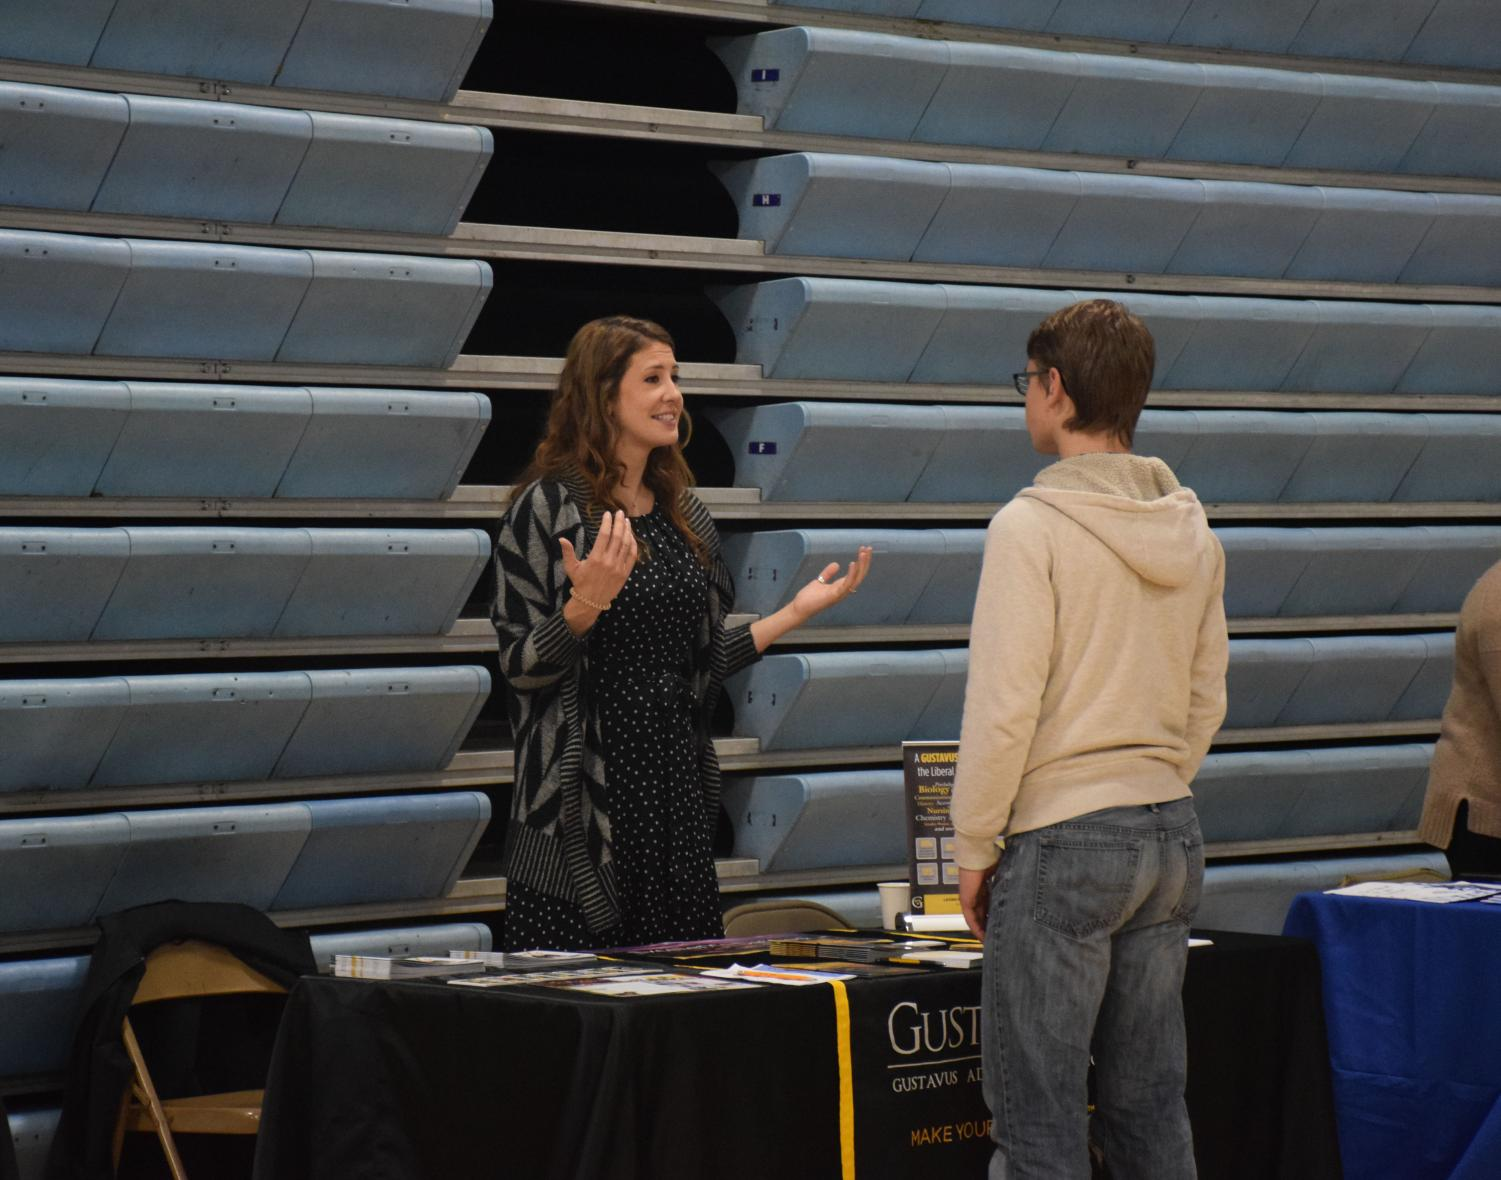 A representative from Gustavus talks with a student